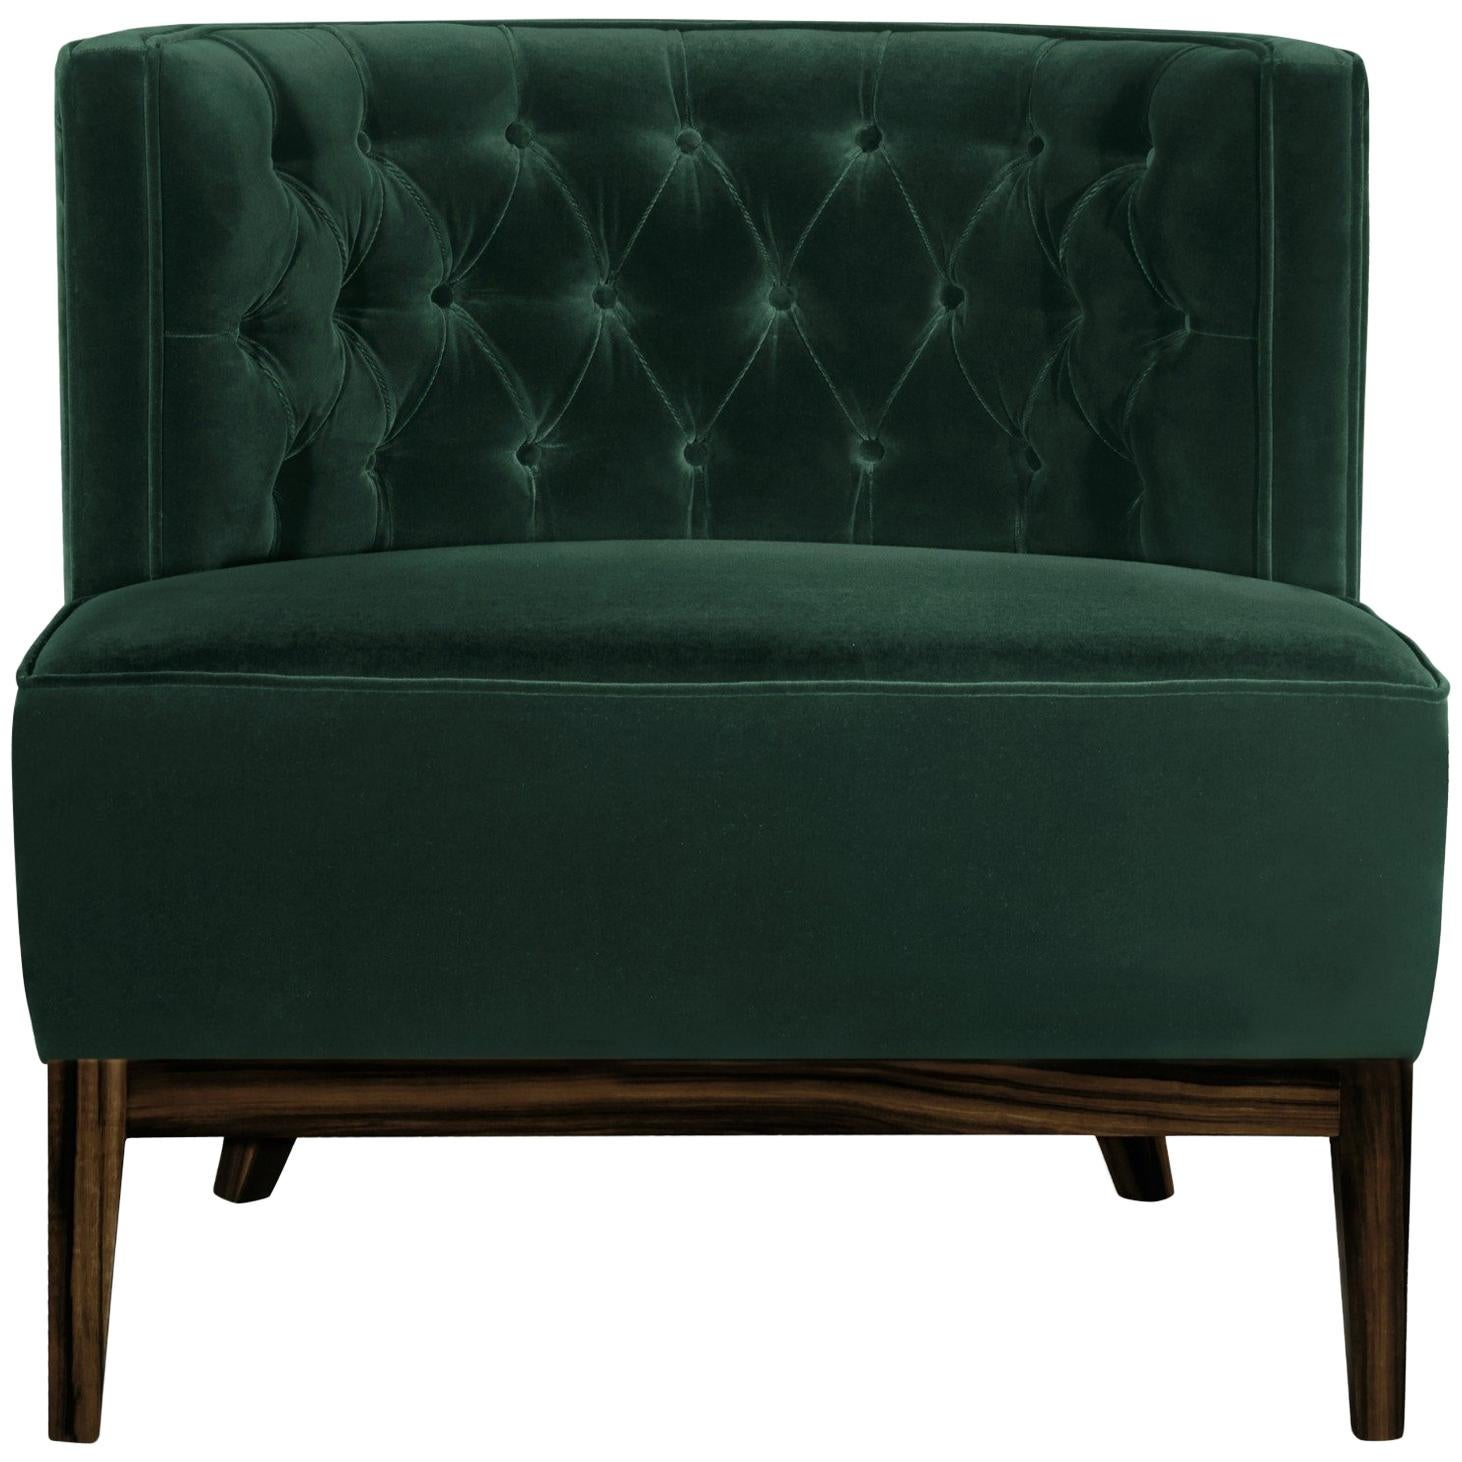 Bourbon Armchair in Cotton Velvet and Ebony Wood Varnished Legs